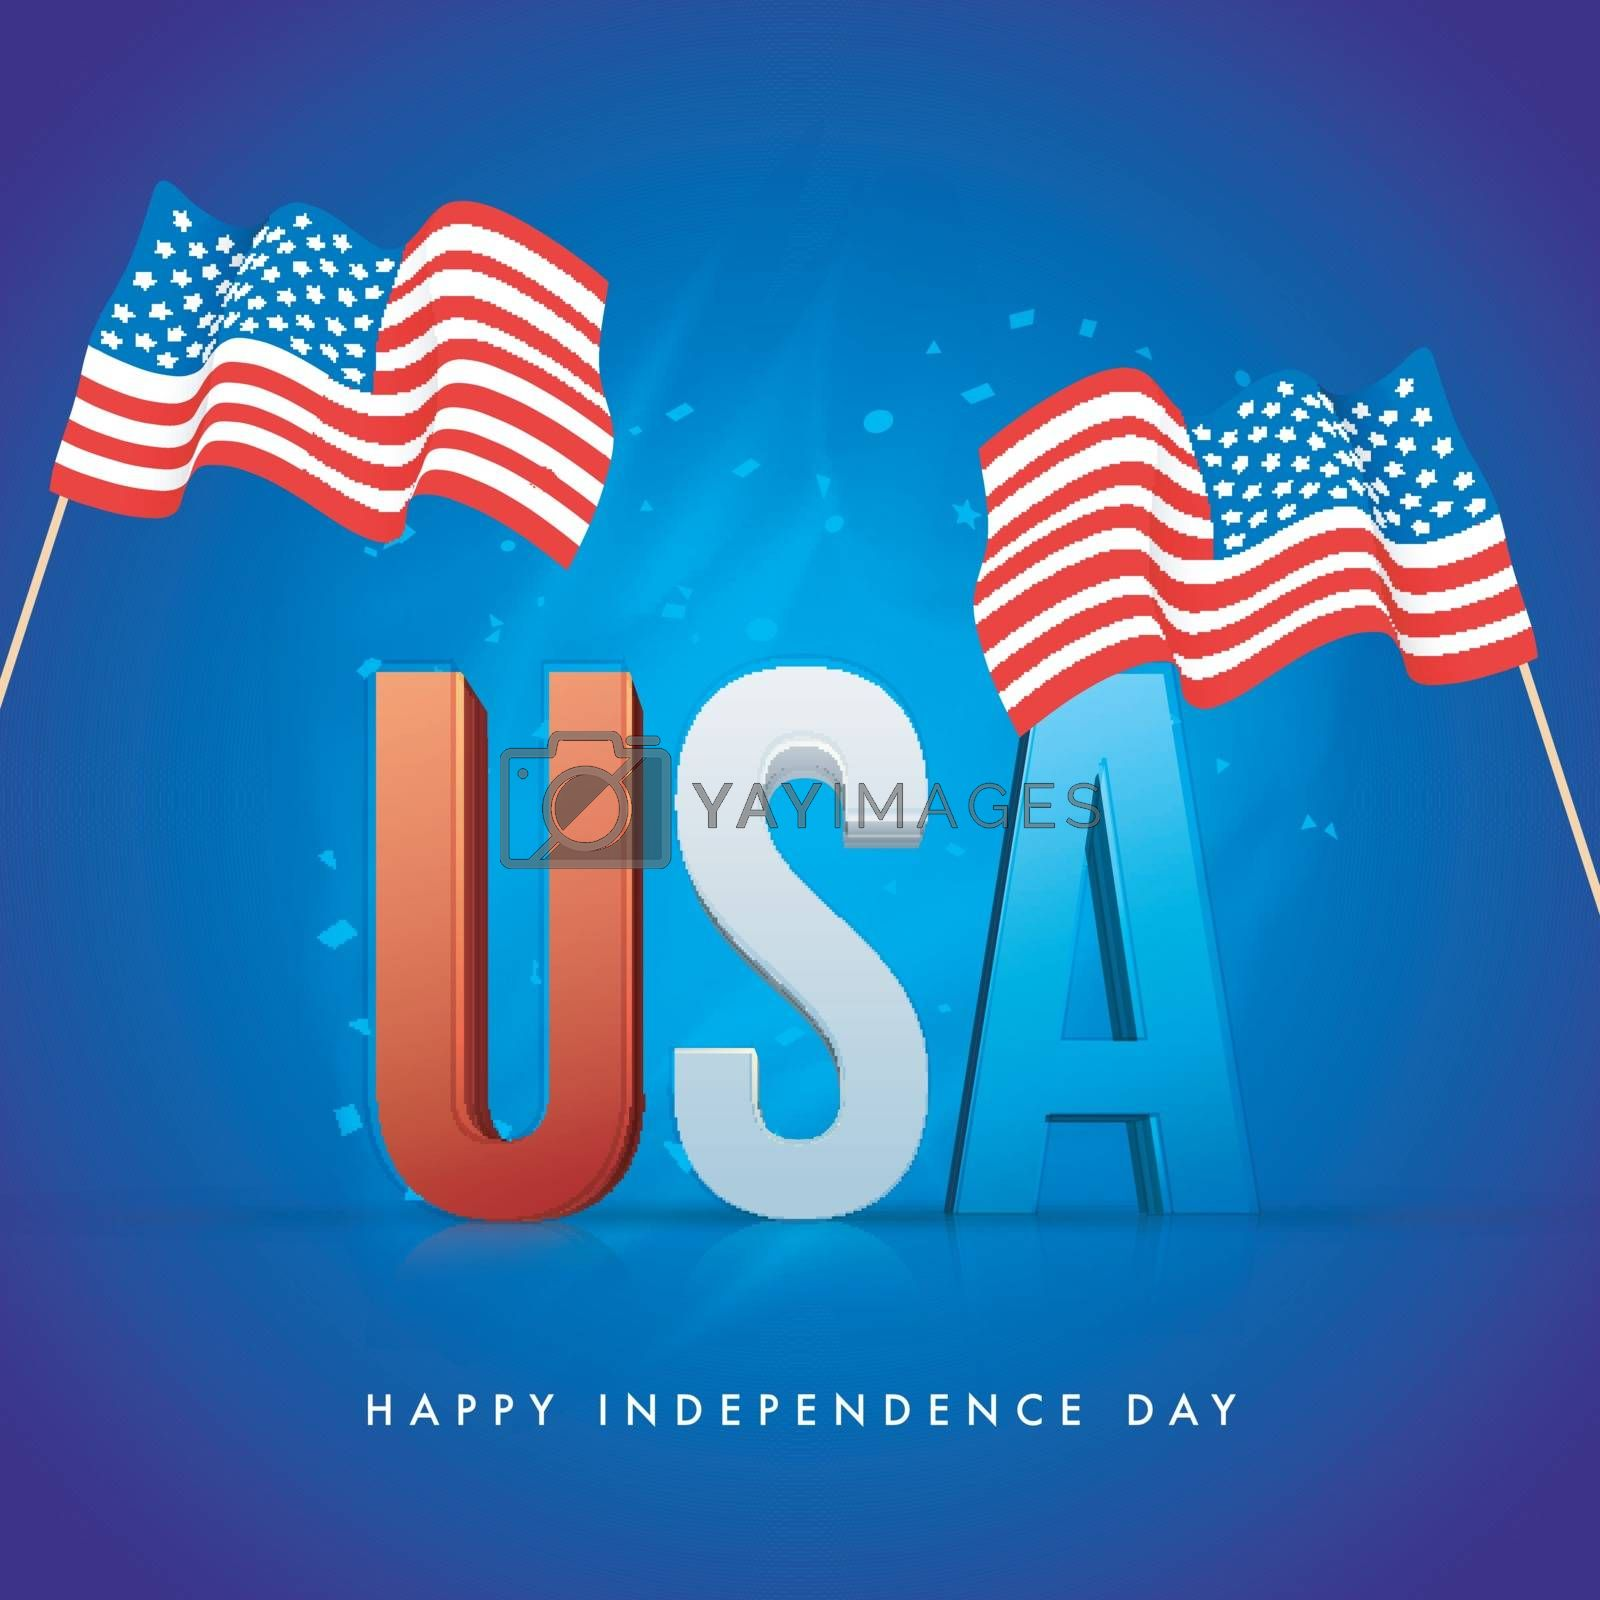 3D Text USA with Waving Flags on shiny blue background for Happy Independence Day celebration.